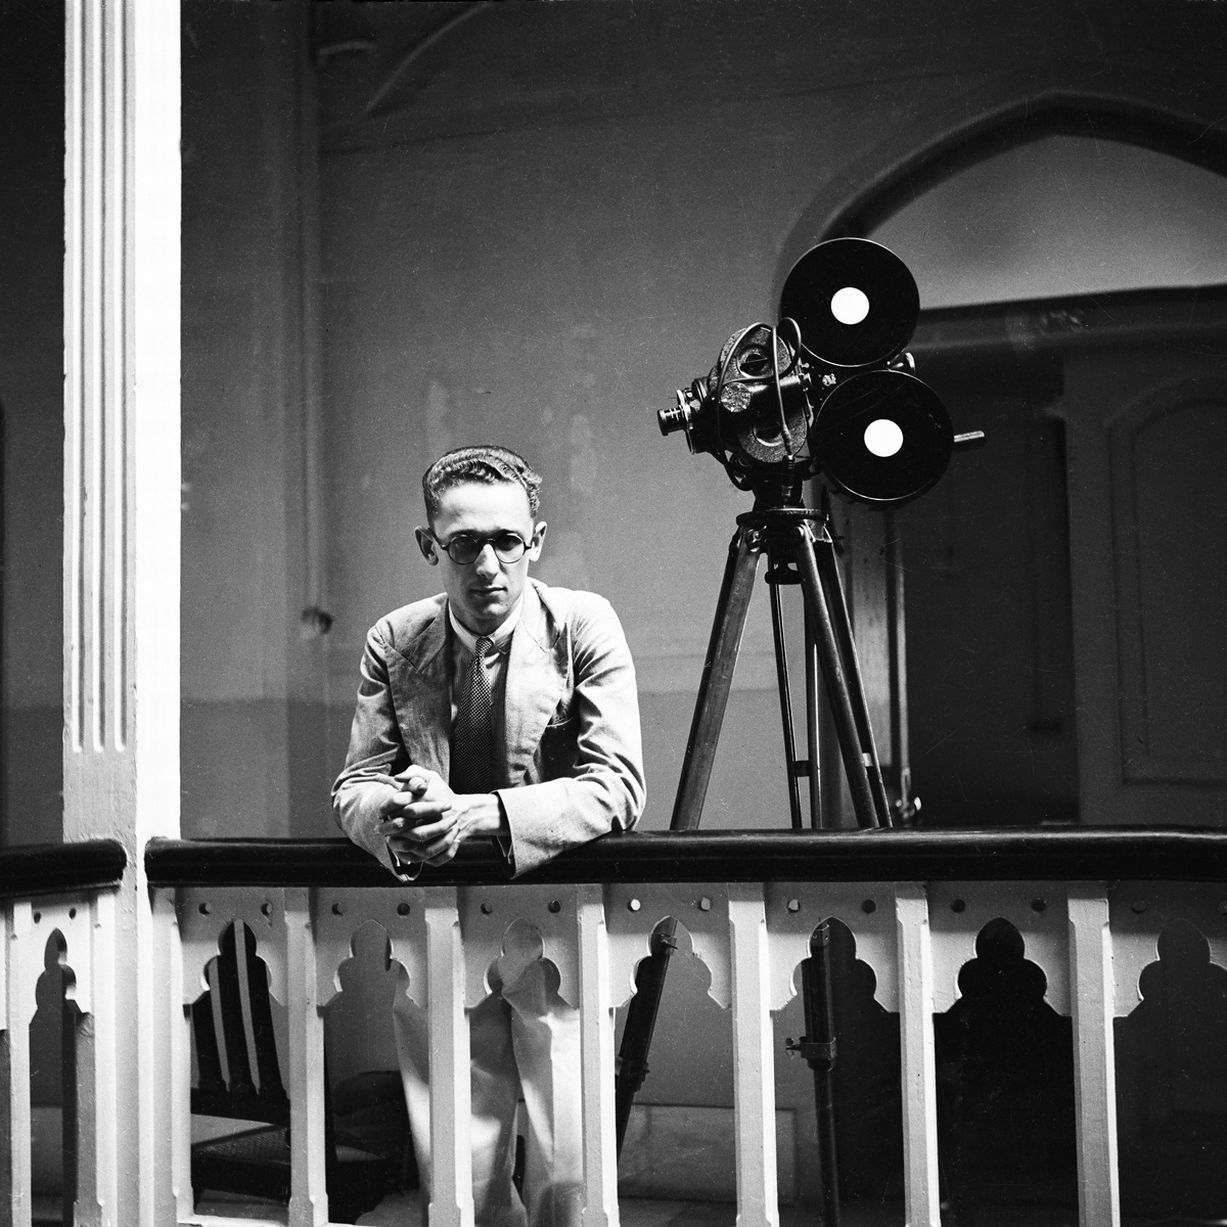 Bert Scott in Bombay as Times of India newspaper photographer in 1936